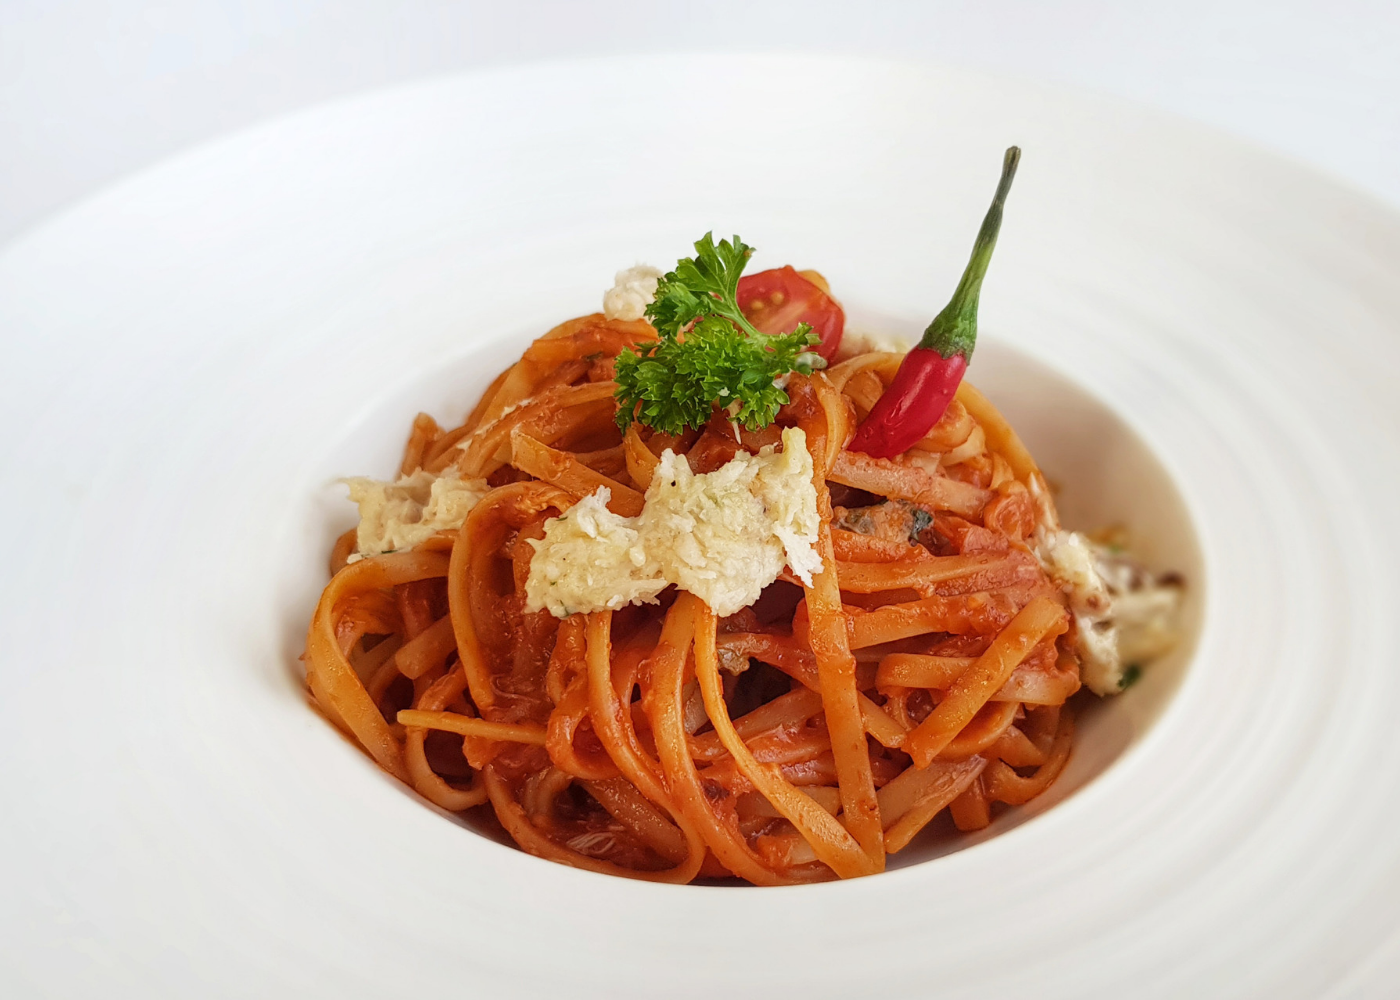 Chilli crabmeat linguine at Lawry's The Prime Rib